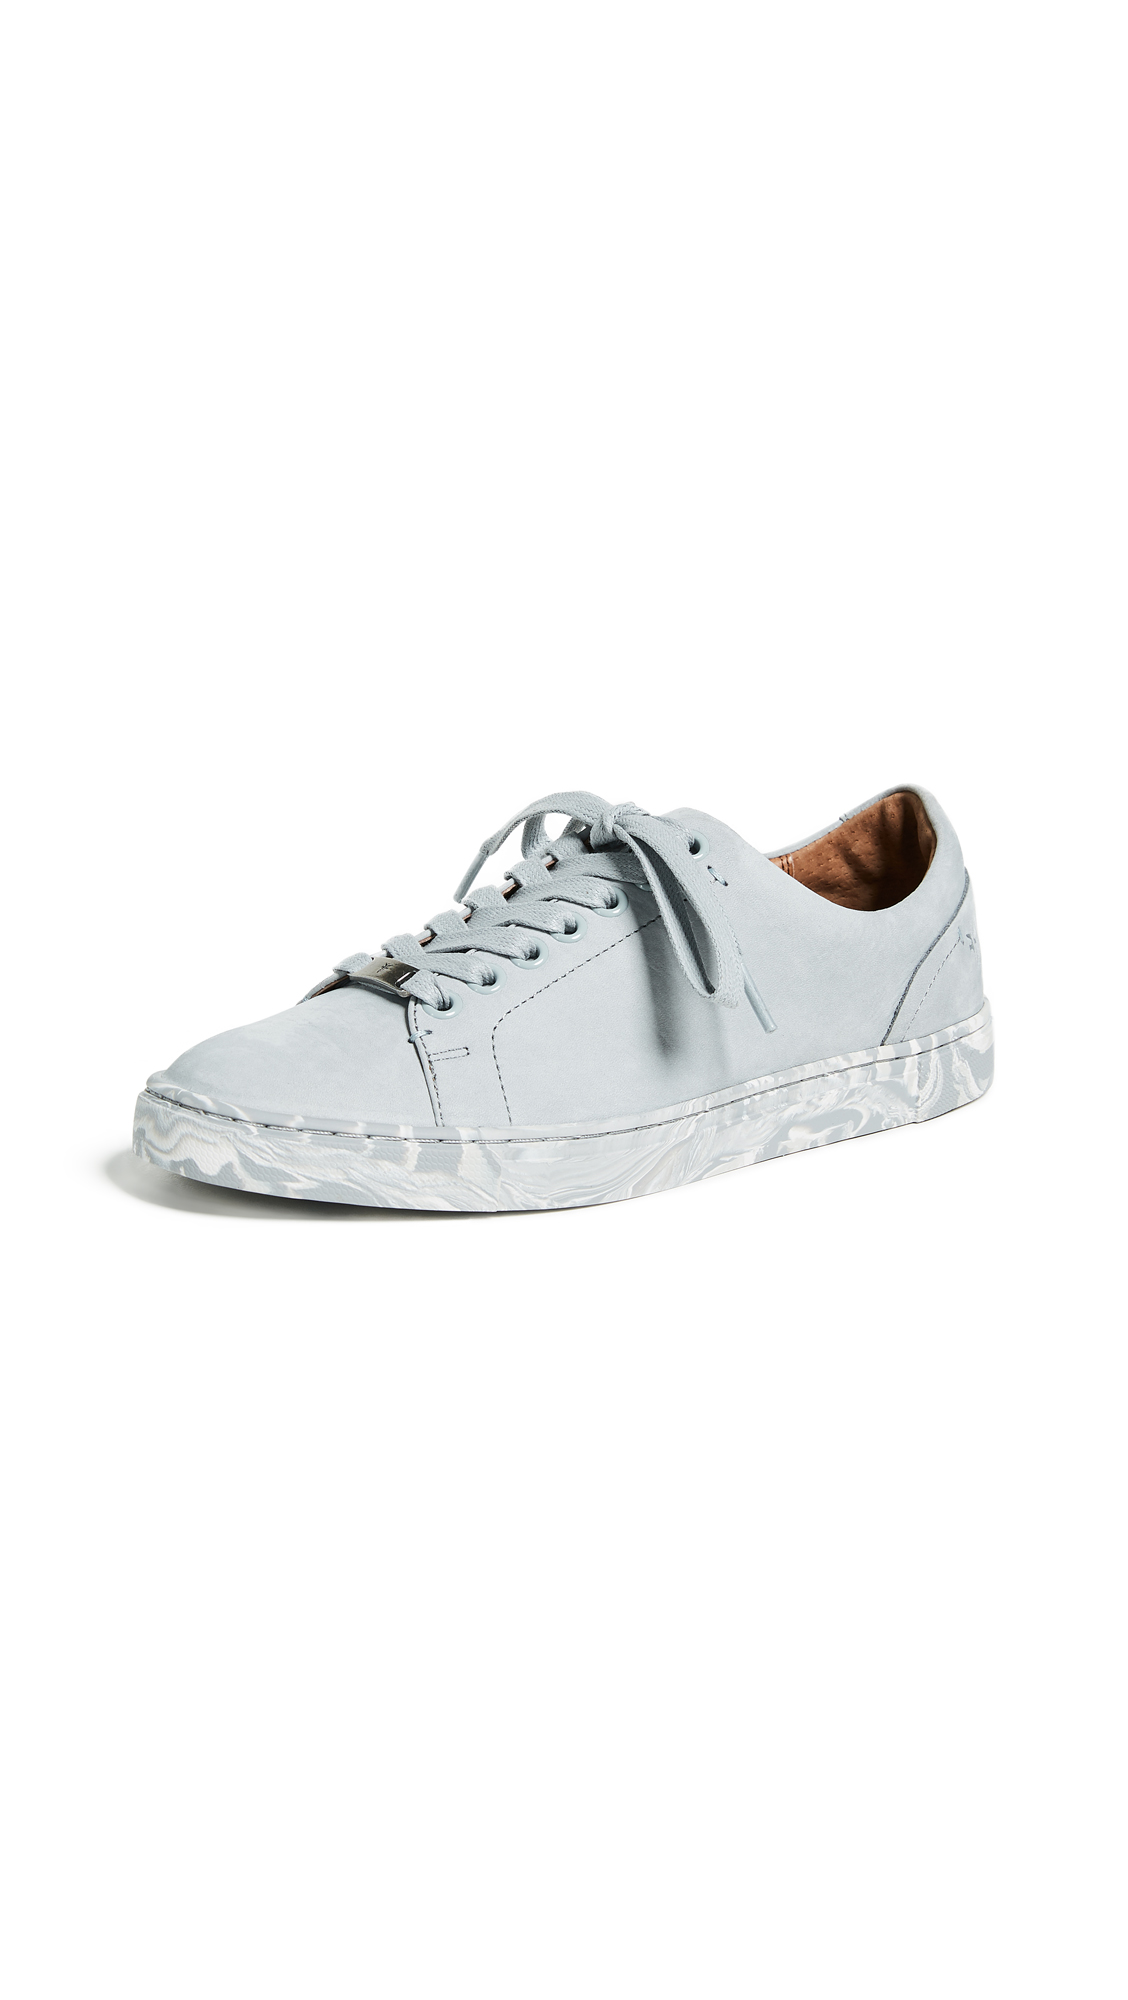 Frye Ivy Low Lace Sneakers - Ice